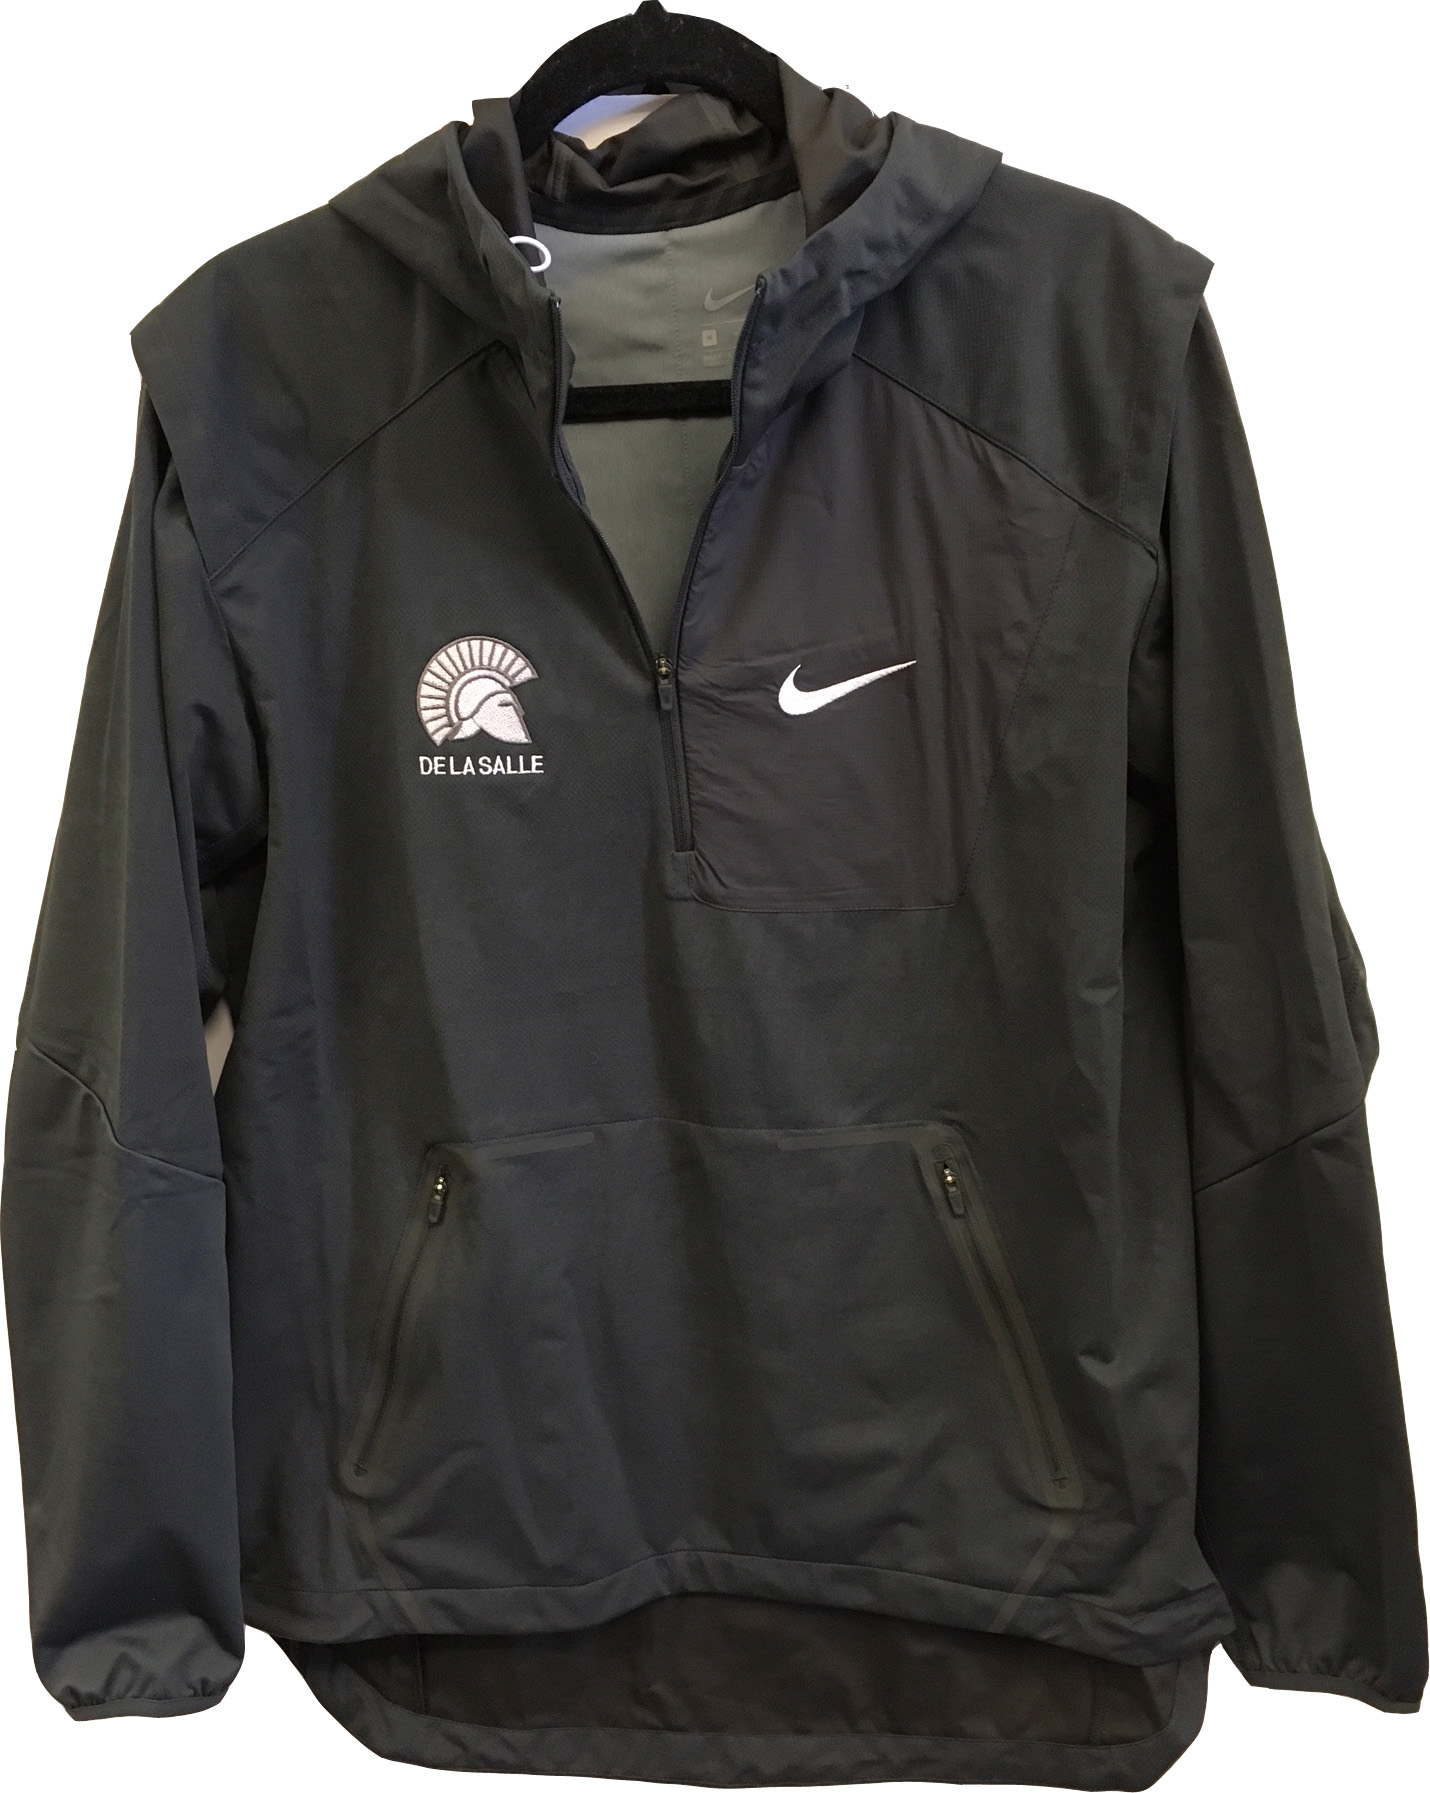 7361c1e13818 Nike Alpha Fly Rush Jacket - Anthracite  De La Salle Bookstore